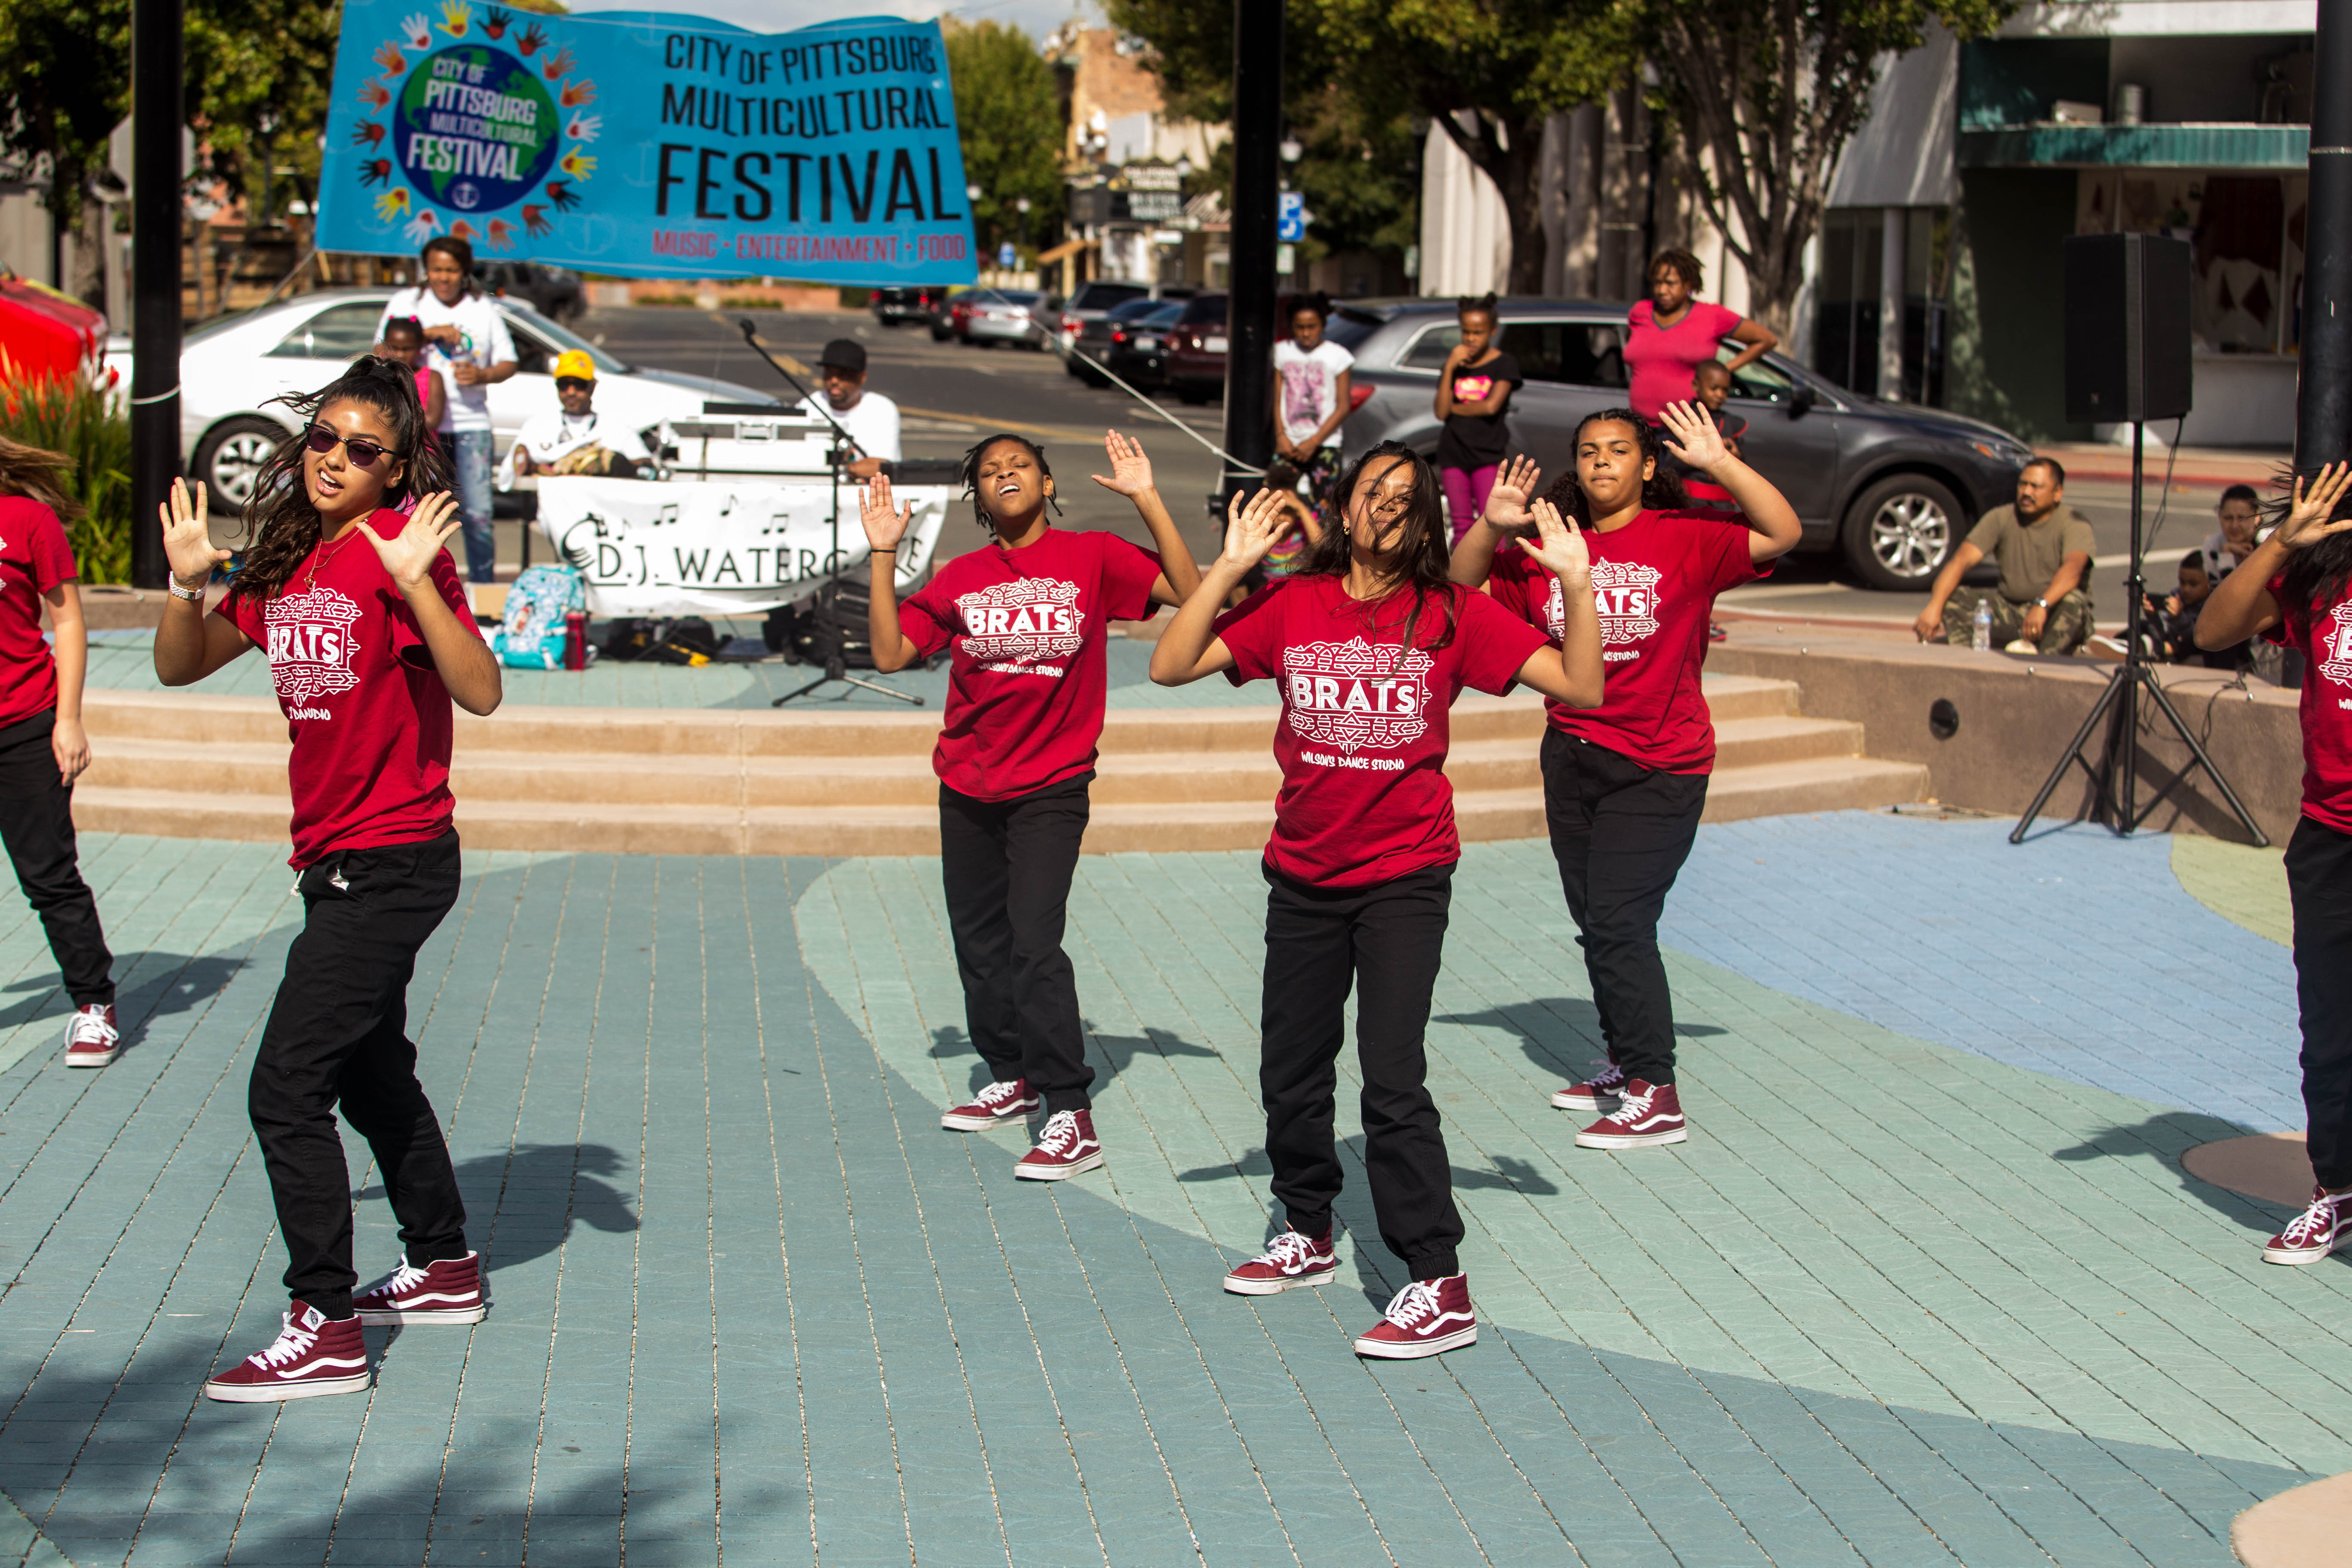 CITY_PITTSBURG_MULTICULTURAL_OCTOBER_2016 (426)